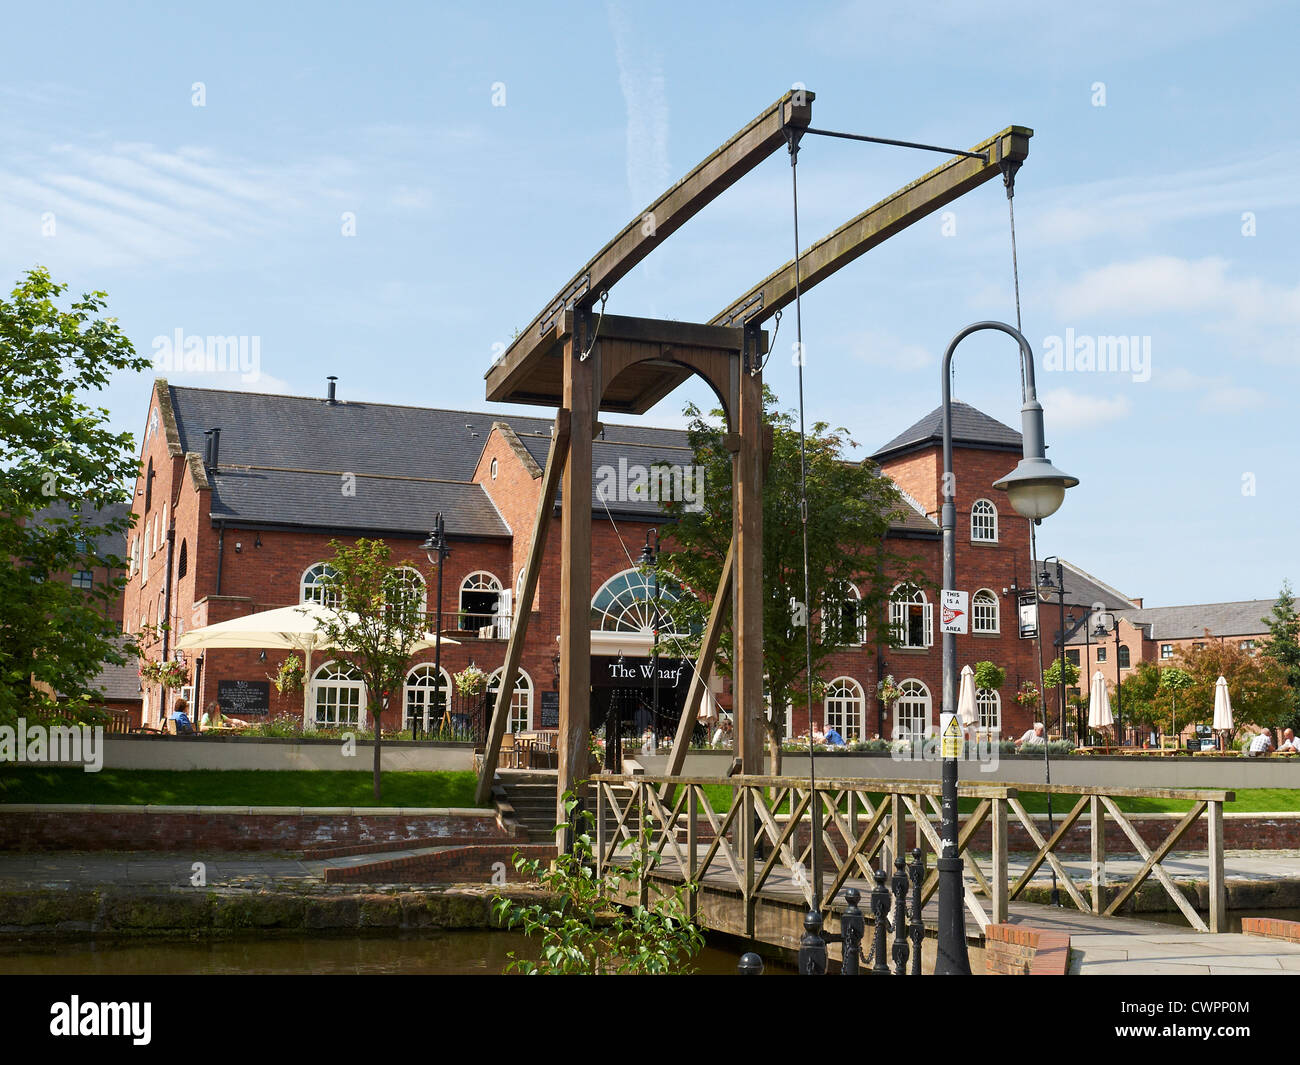 The Wharf restaurant in Castlefield Manchester UK - Stock Image